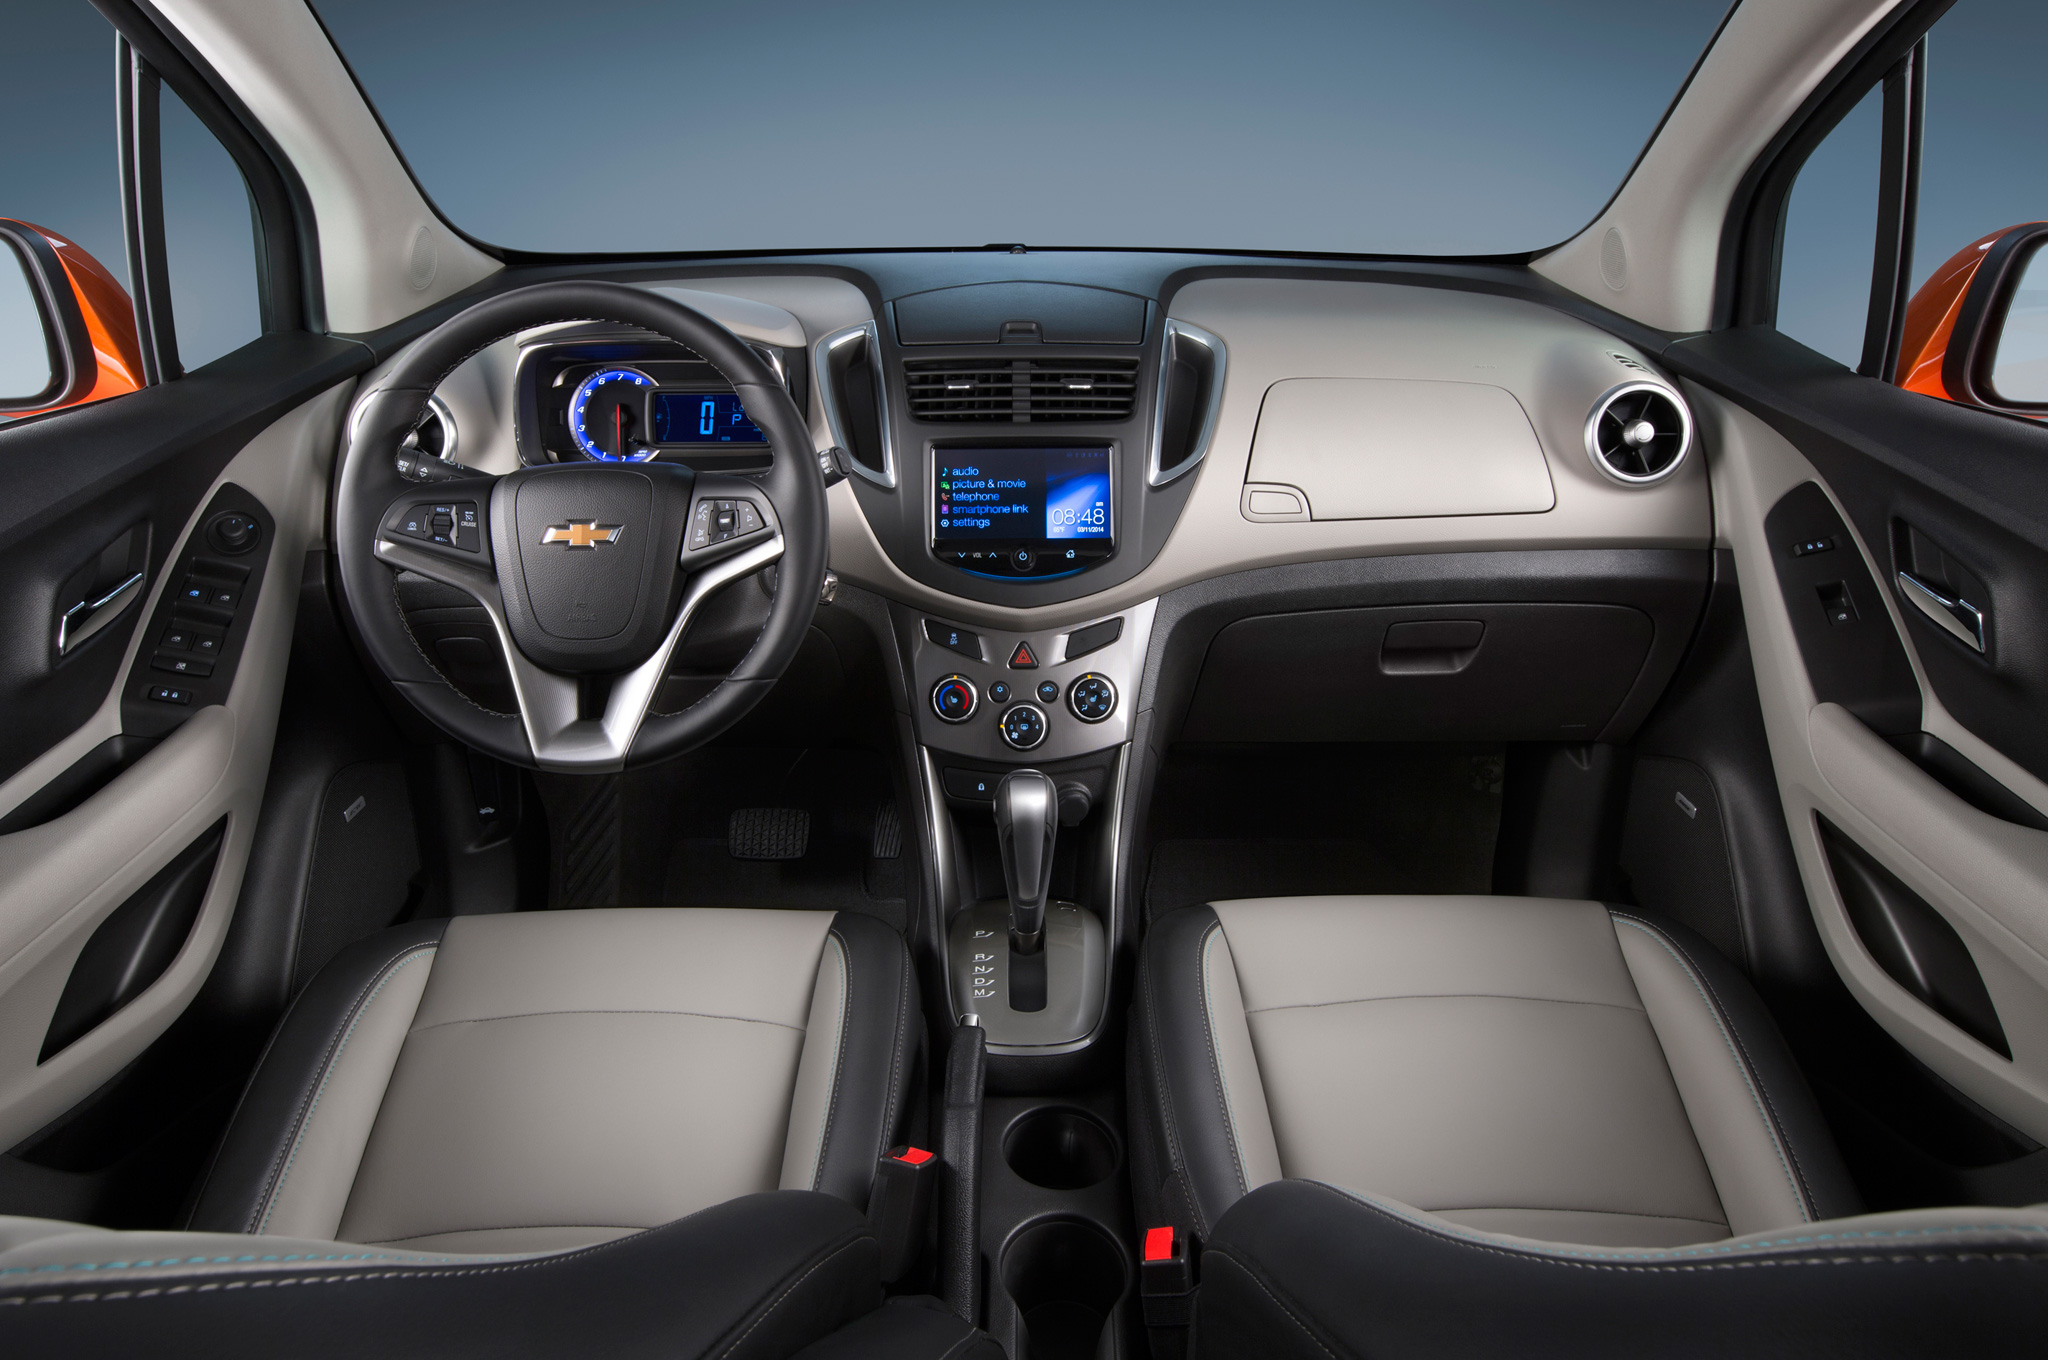 2015 Chevrolet Trax Cockpit And Dashboard Interior (Photo 2 of 8)